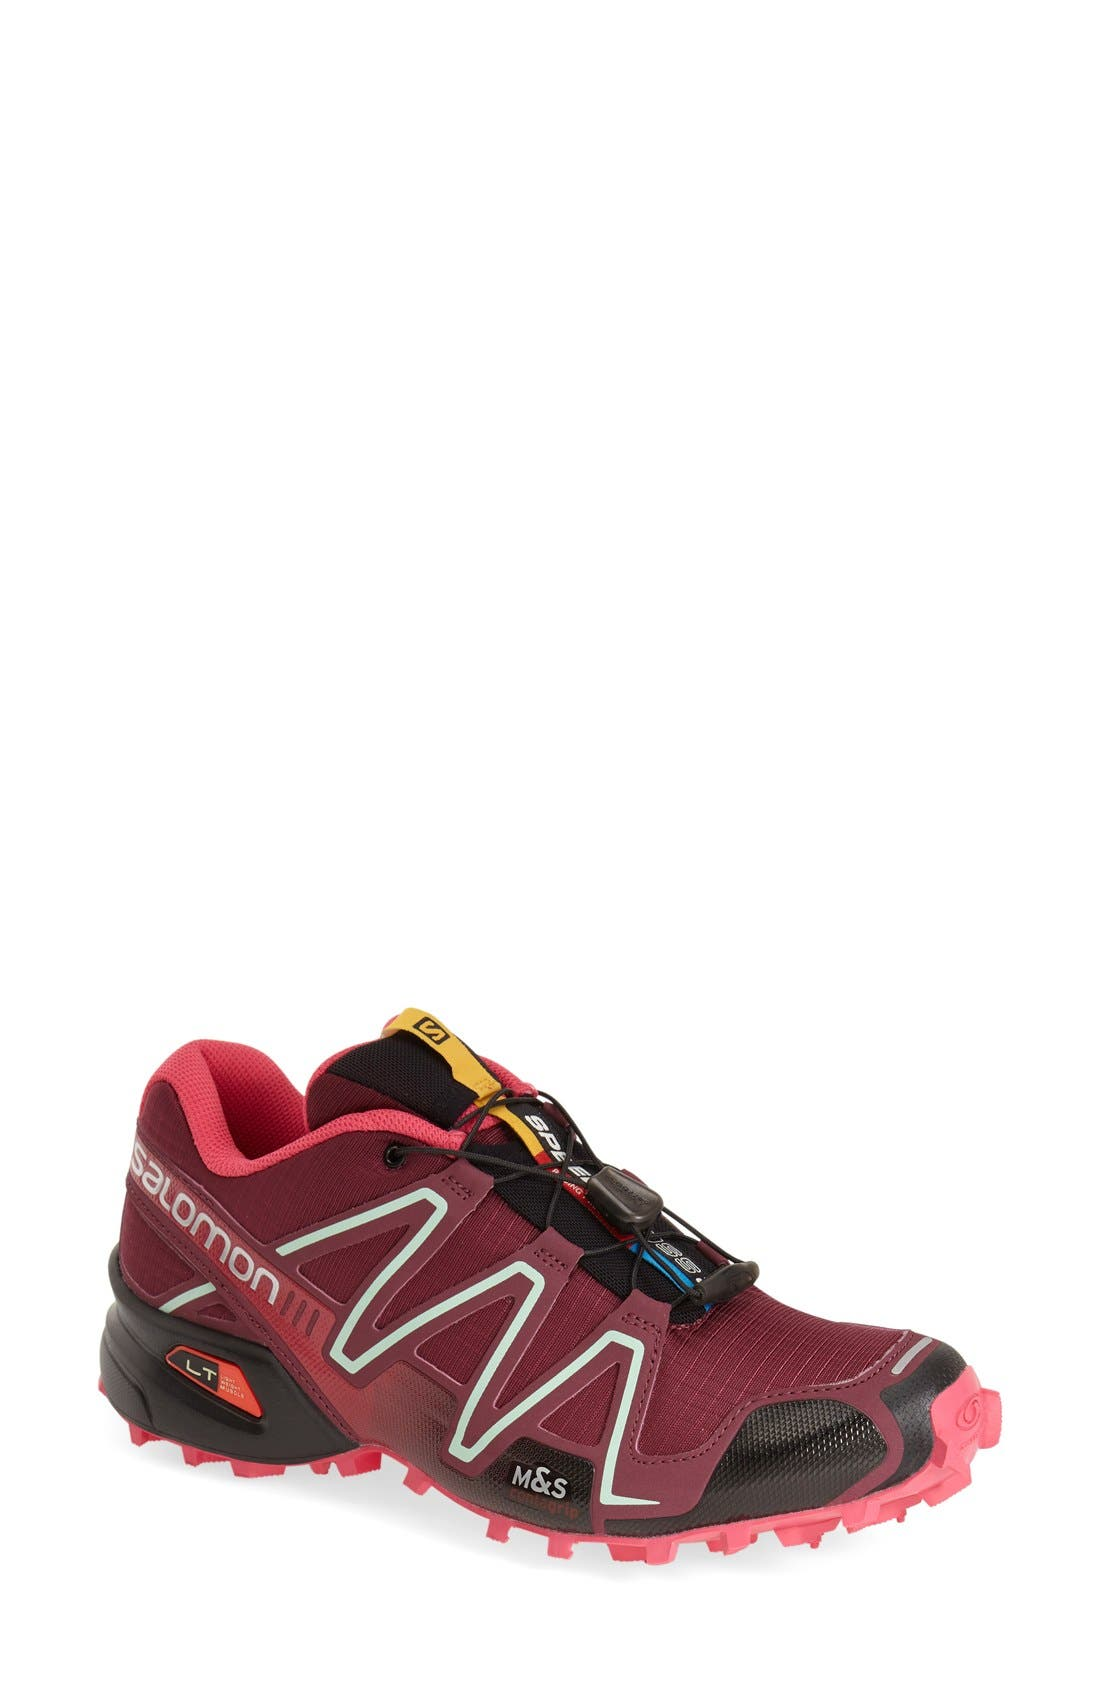 Alternate Image 1 Selected - Salomon 'Speedcross 3' Water Resistant Trail Running Shoe